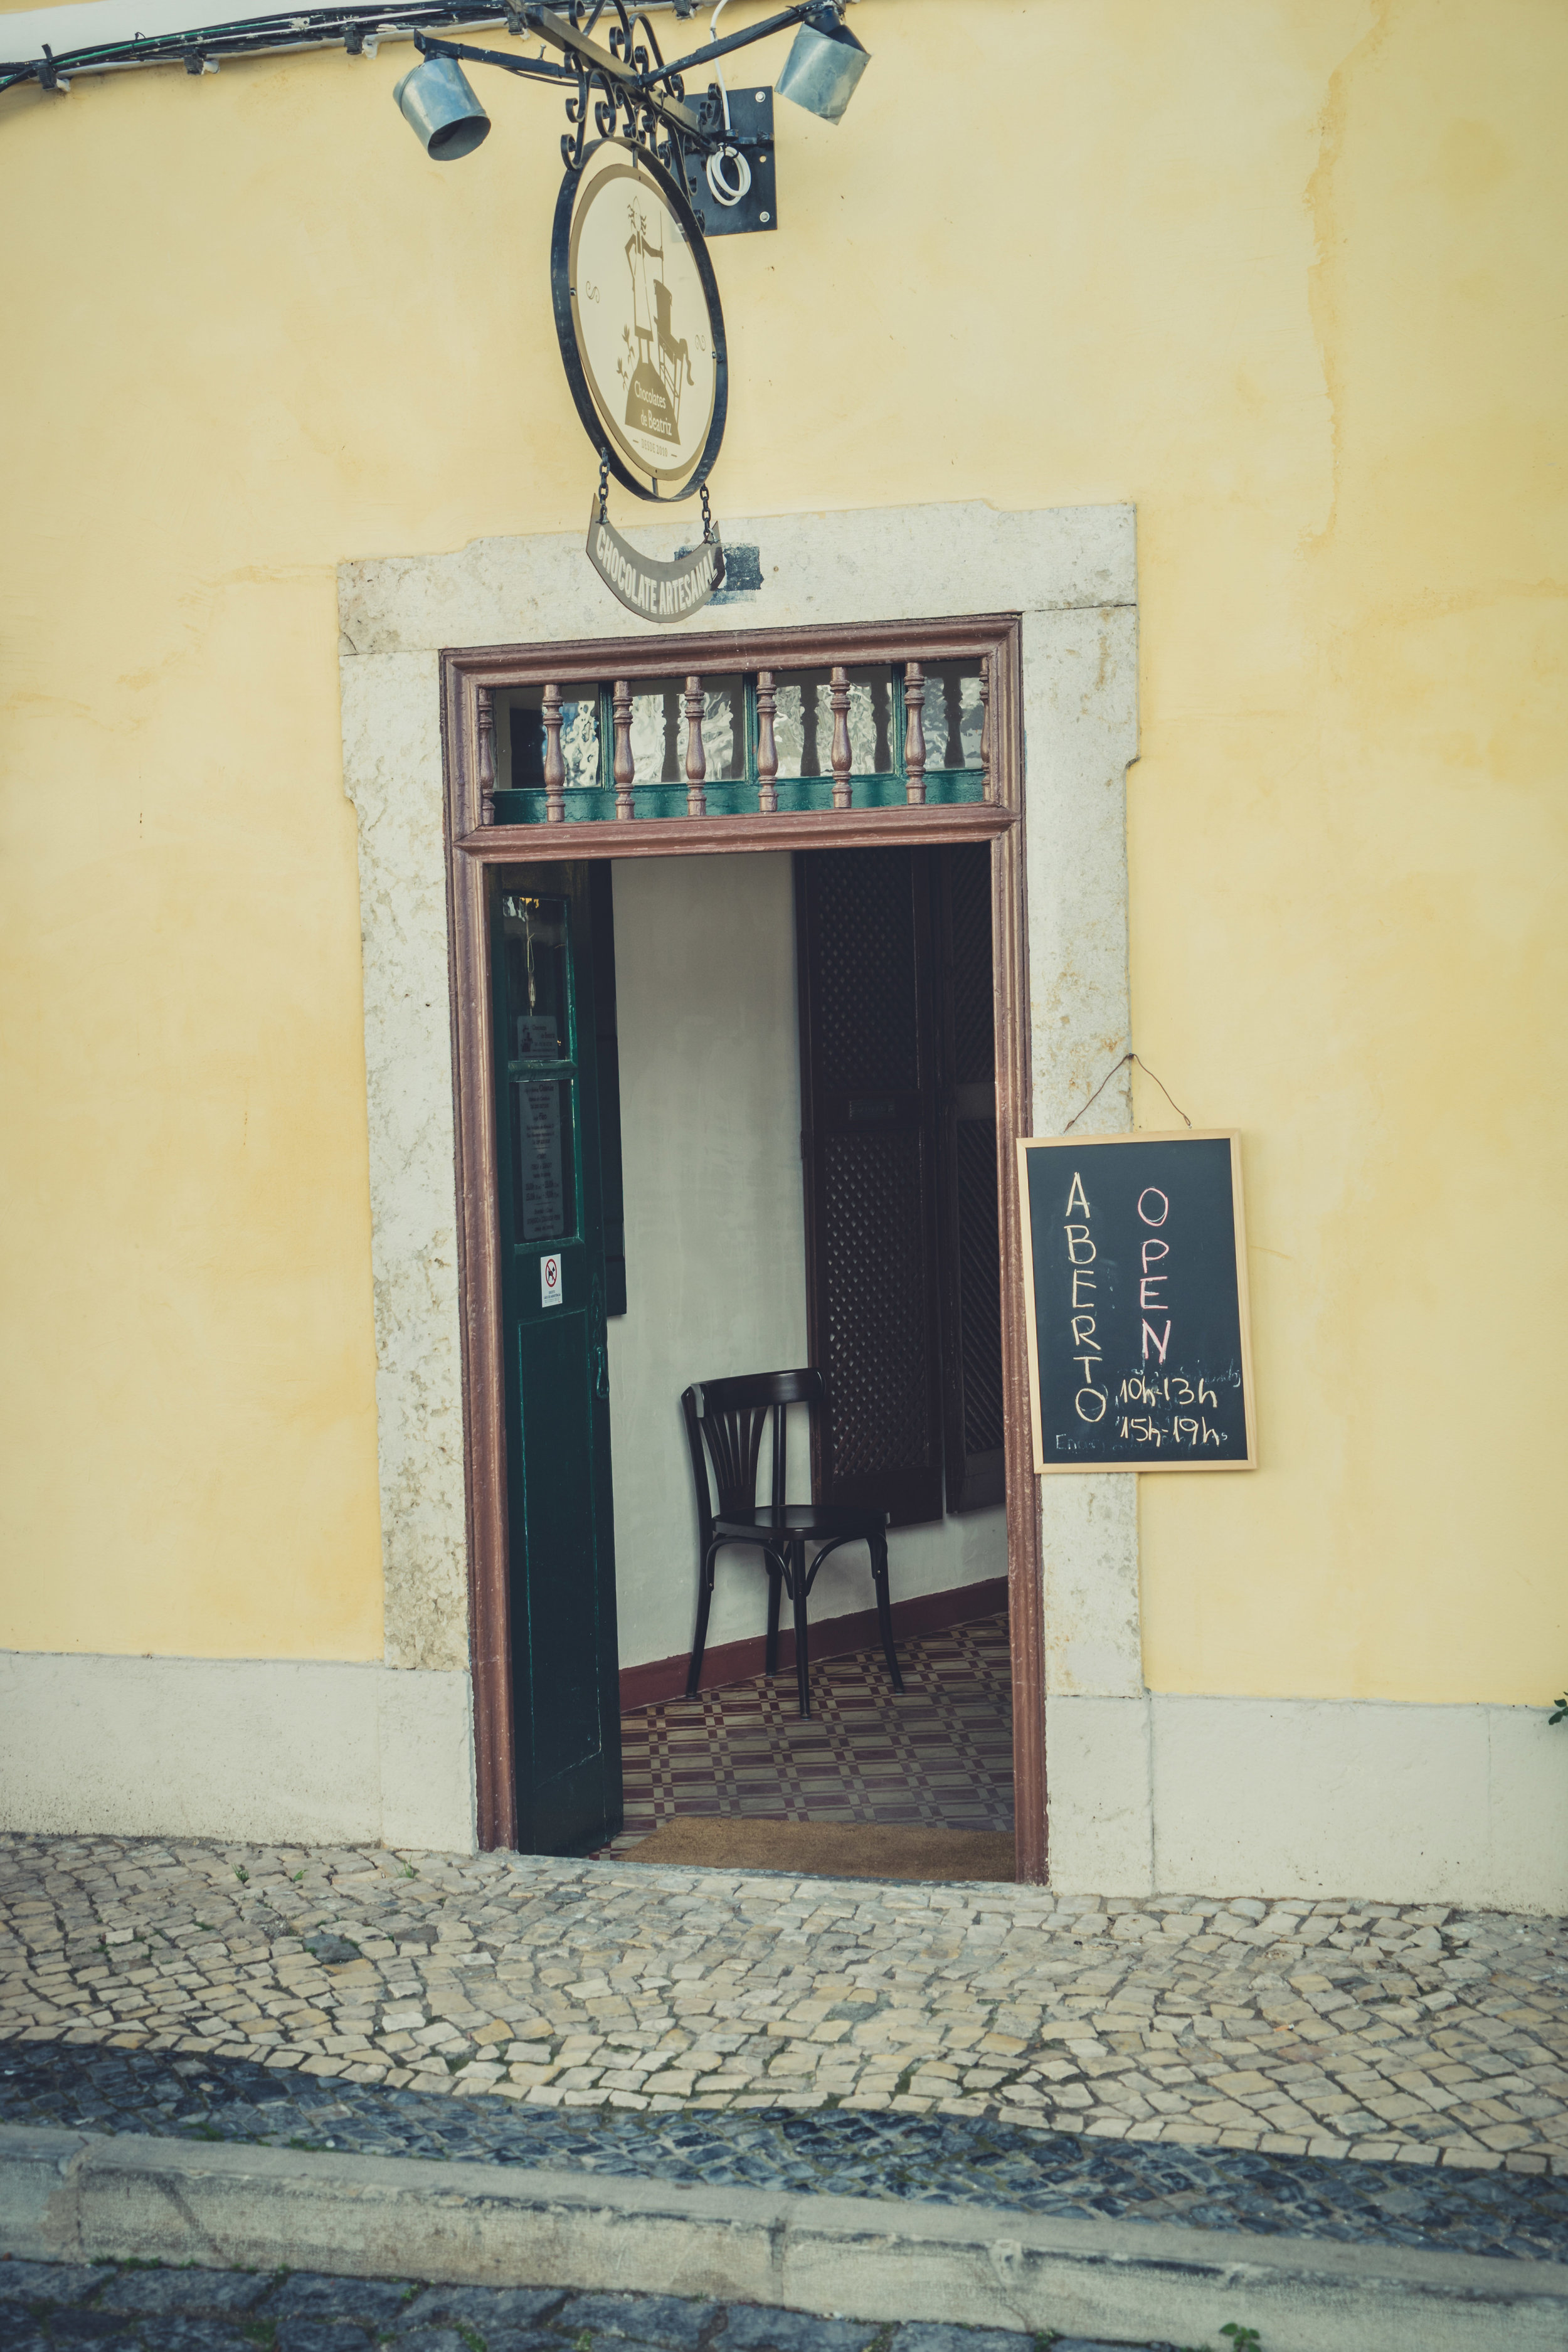 Small shop front in Faro. FAro in the algarve. Old town Faro.jpg